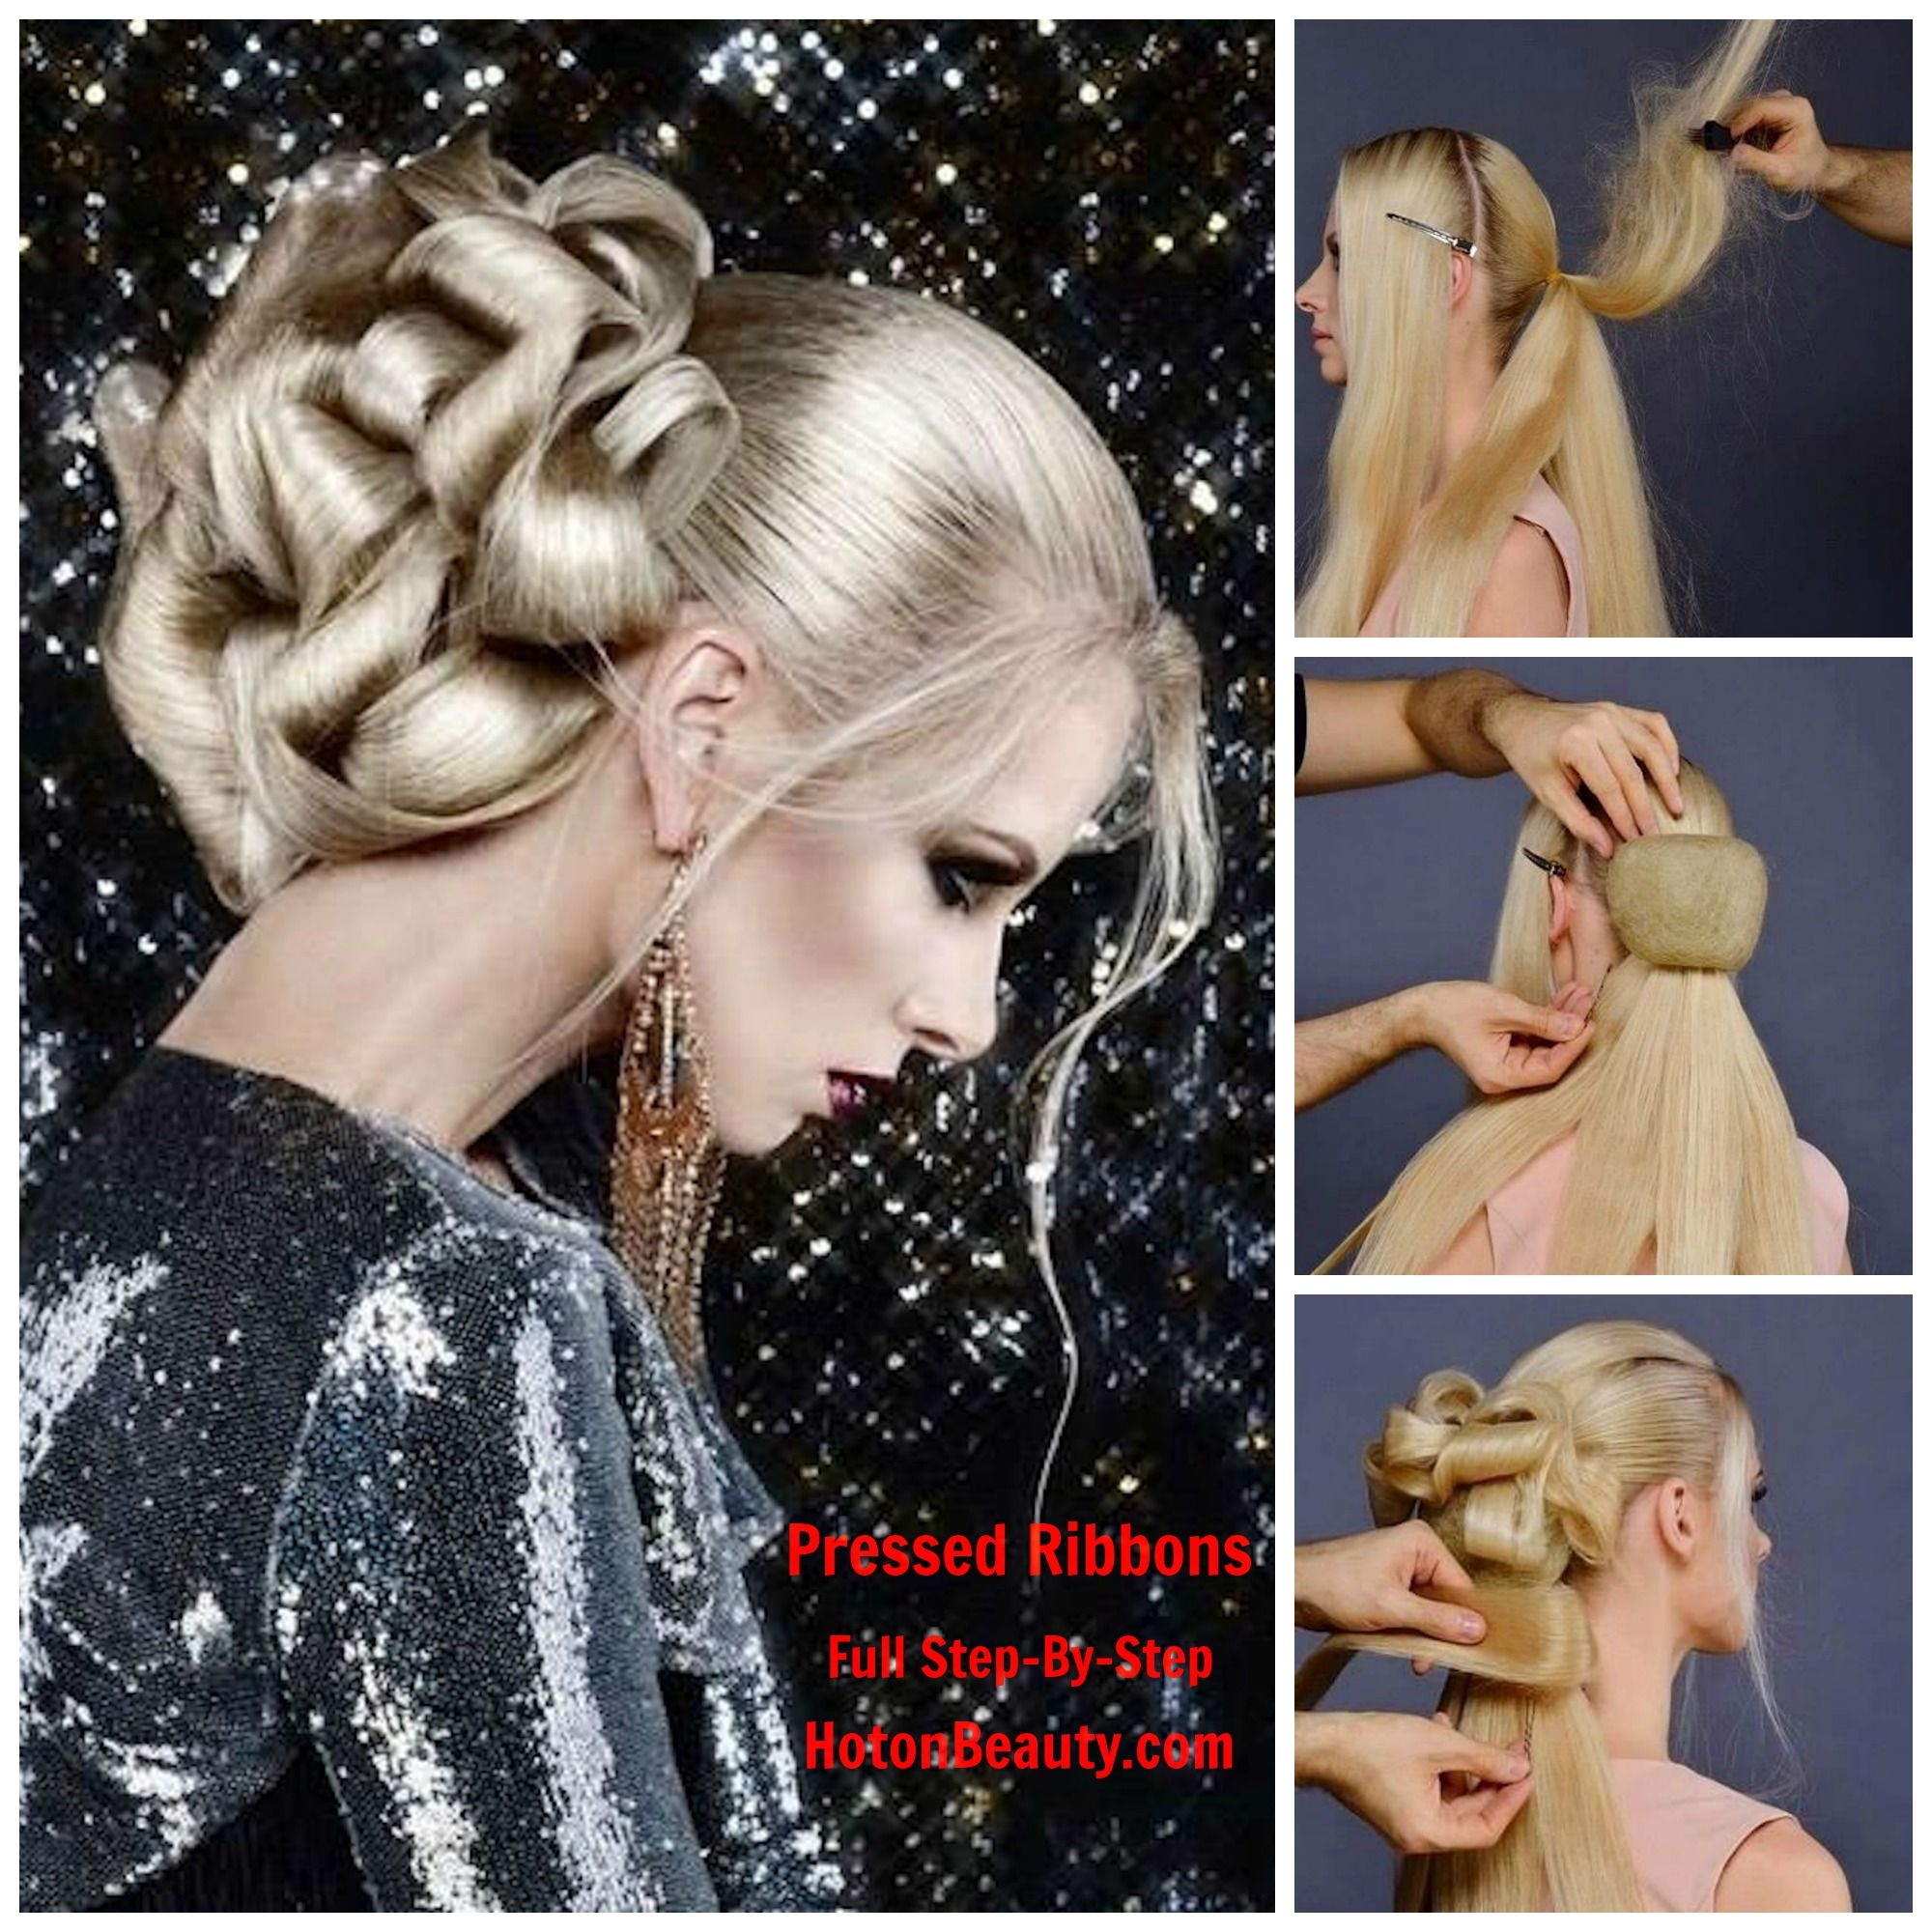 Sharon blain education hair up pinterest - Gorgeous Pressed Ribbons Updo By Ruslan Tatyanin Just Posted On Our Pro Beauty Site